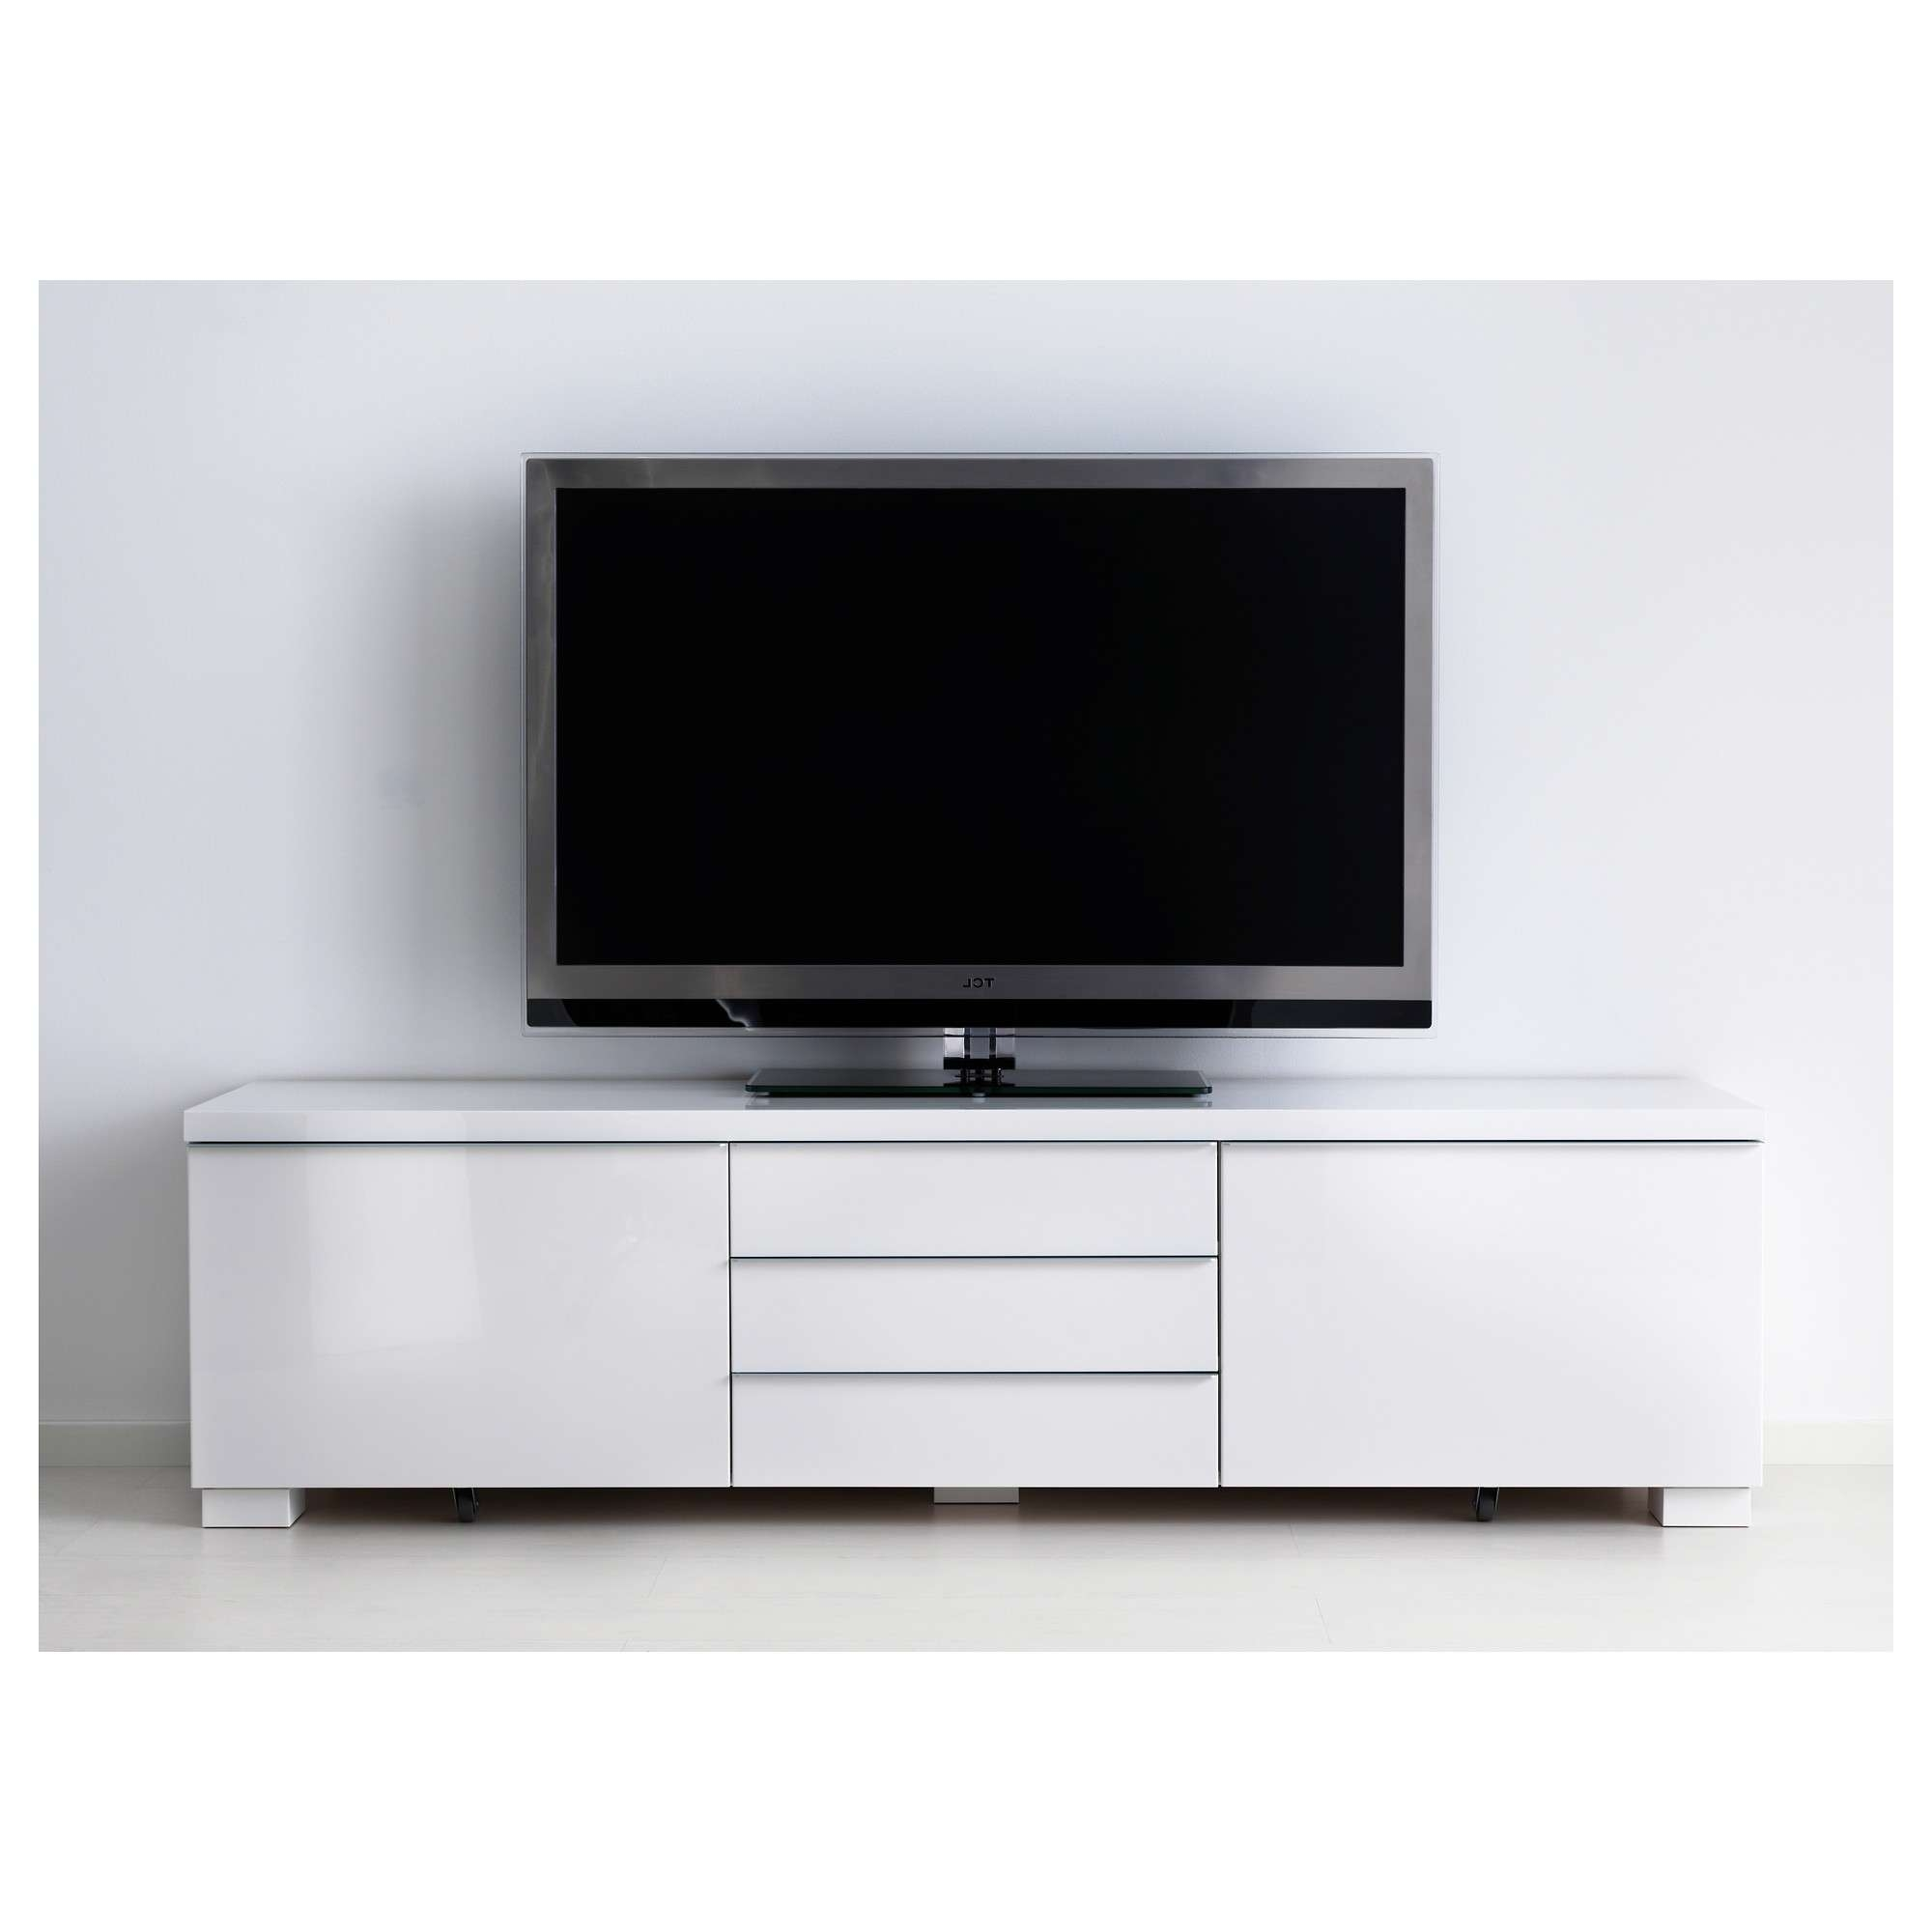 Furniture: Tv Stands Ikea In High Gloss White For Best Home Throughout Black Gloss Corner Tv Stands (View 6 of 15)